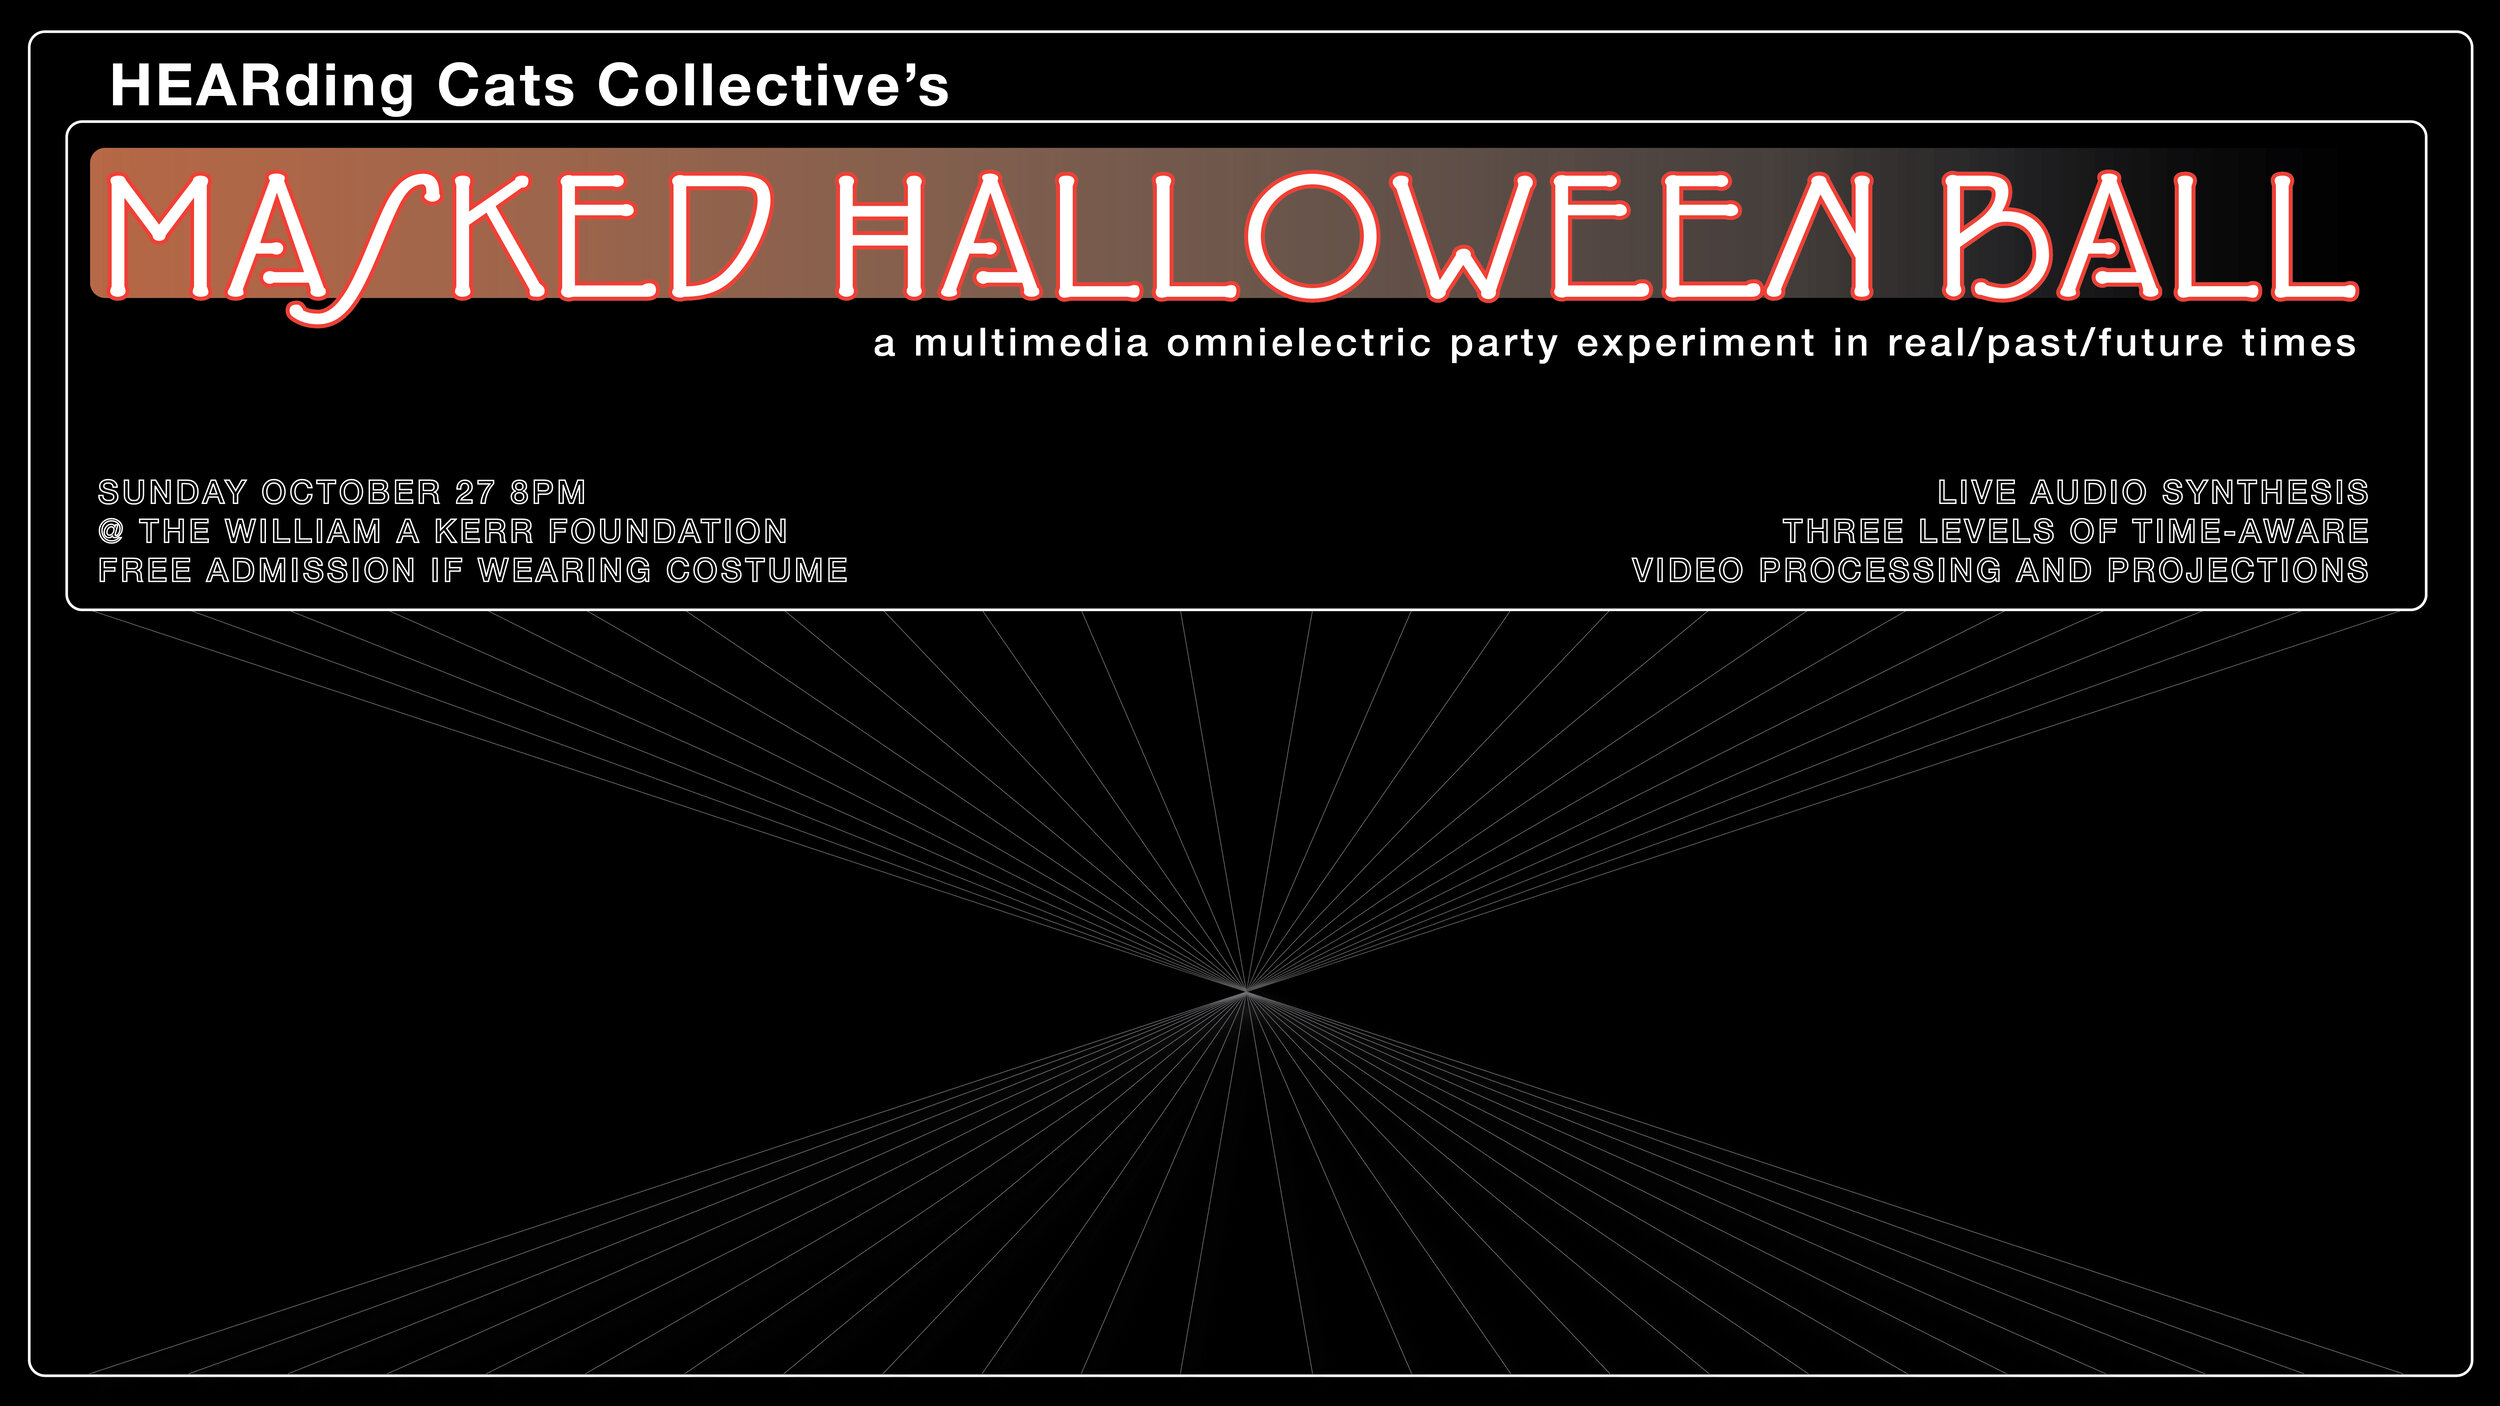 HCC's Masked Halloween Ball - A Multimedia omnielectric party experiment in real/past/future times.October 27, 8PM